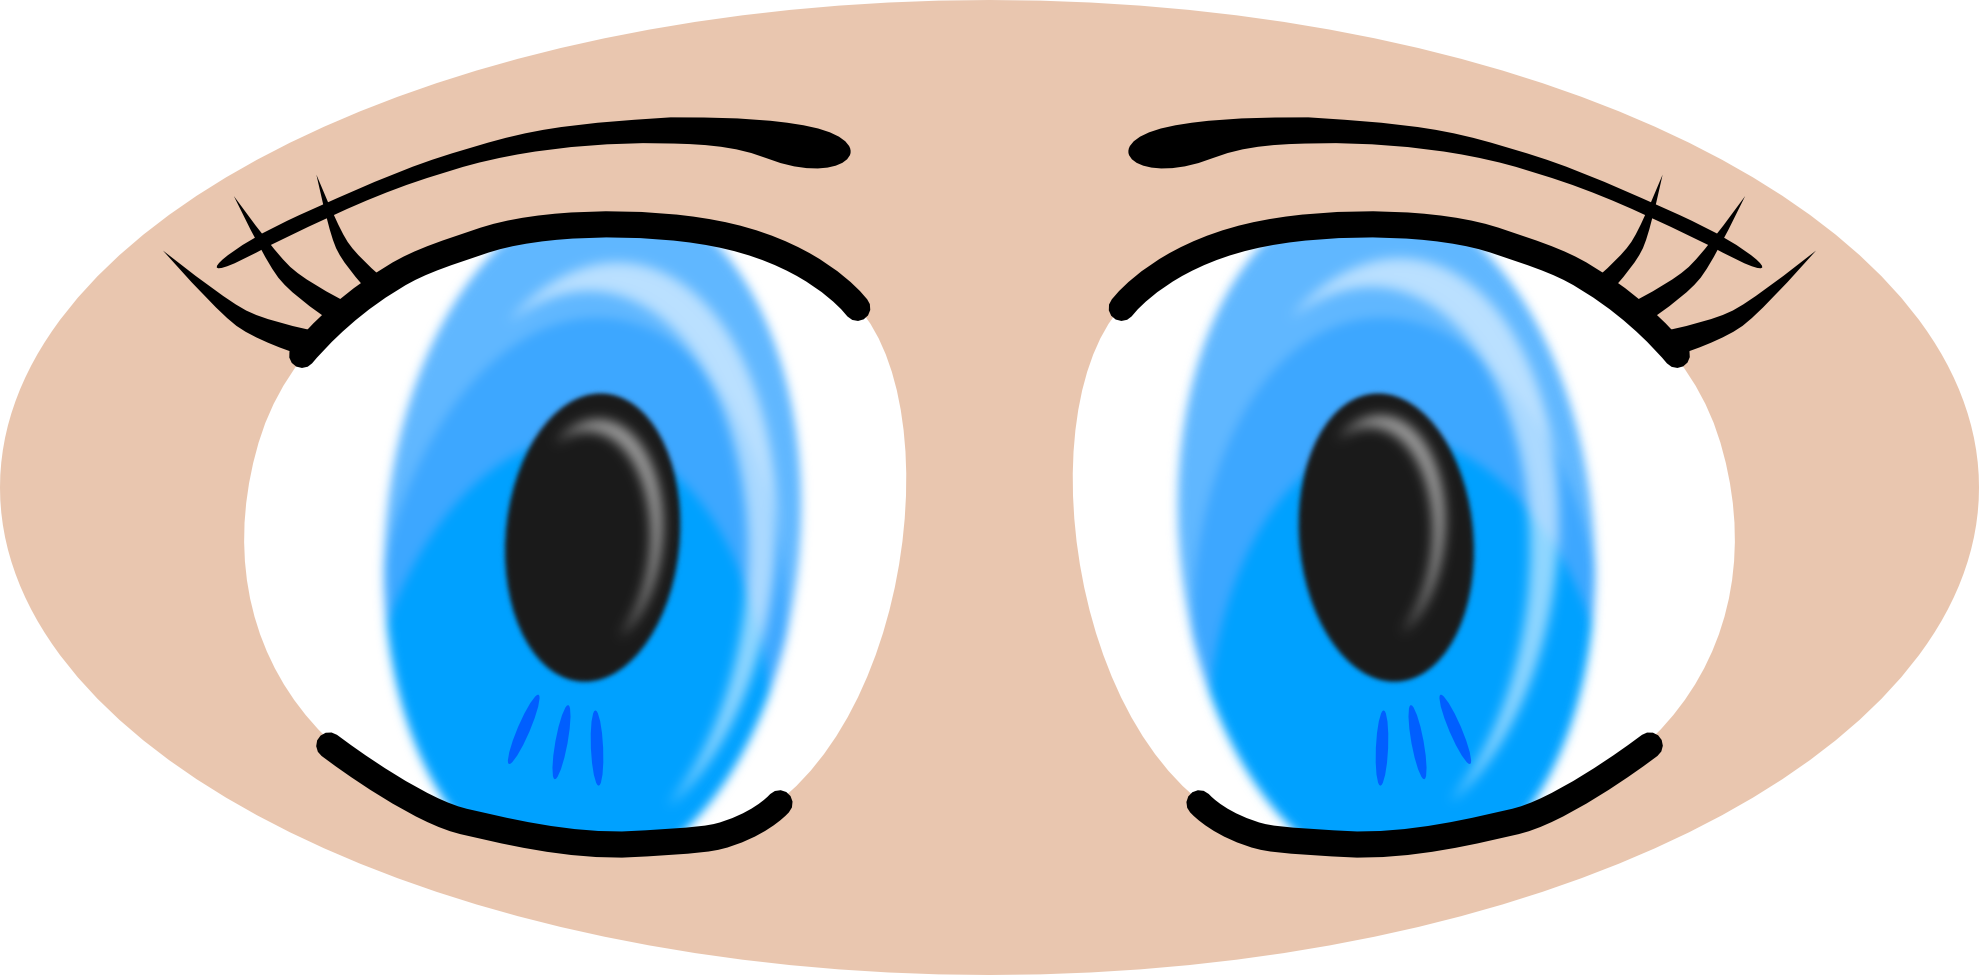 Blue Eyes clipart #12, Download drawings